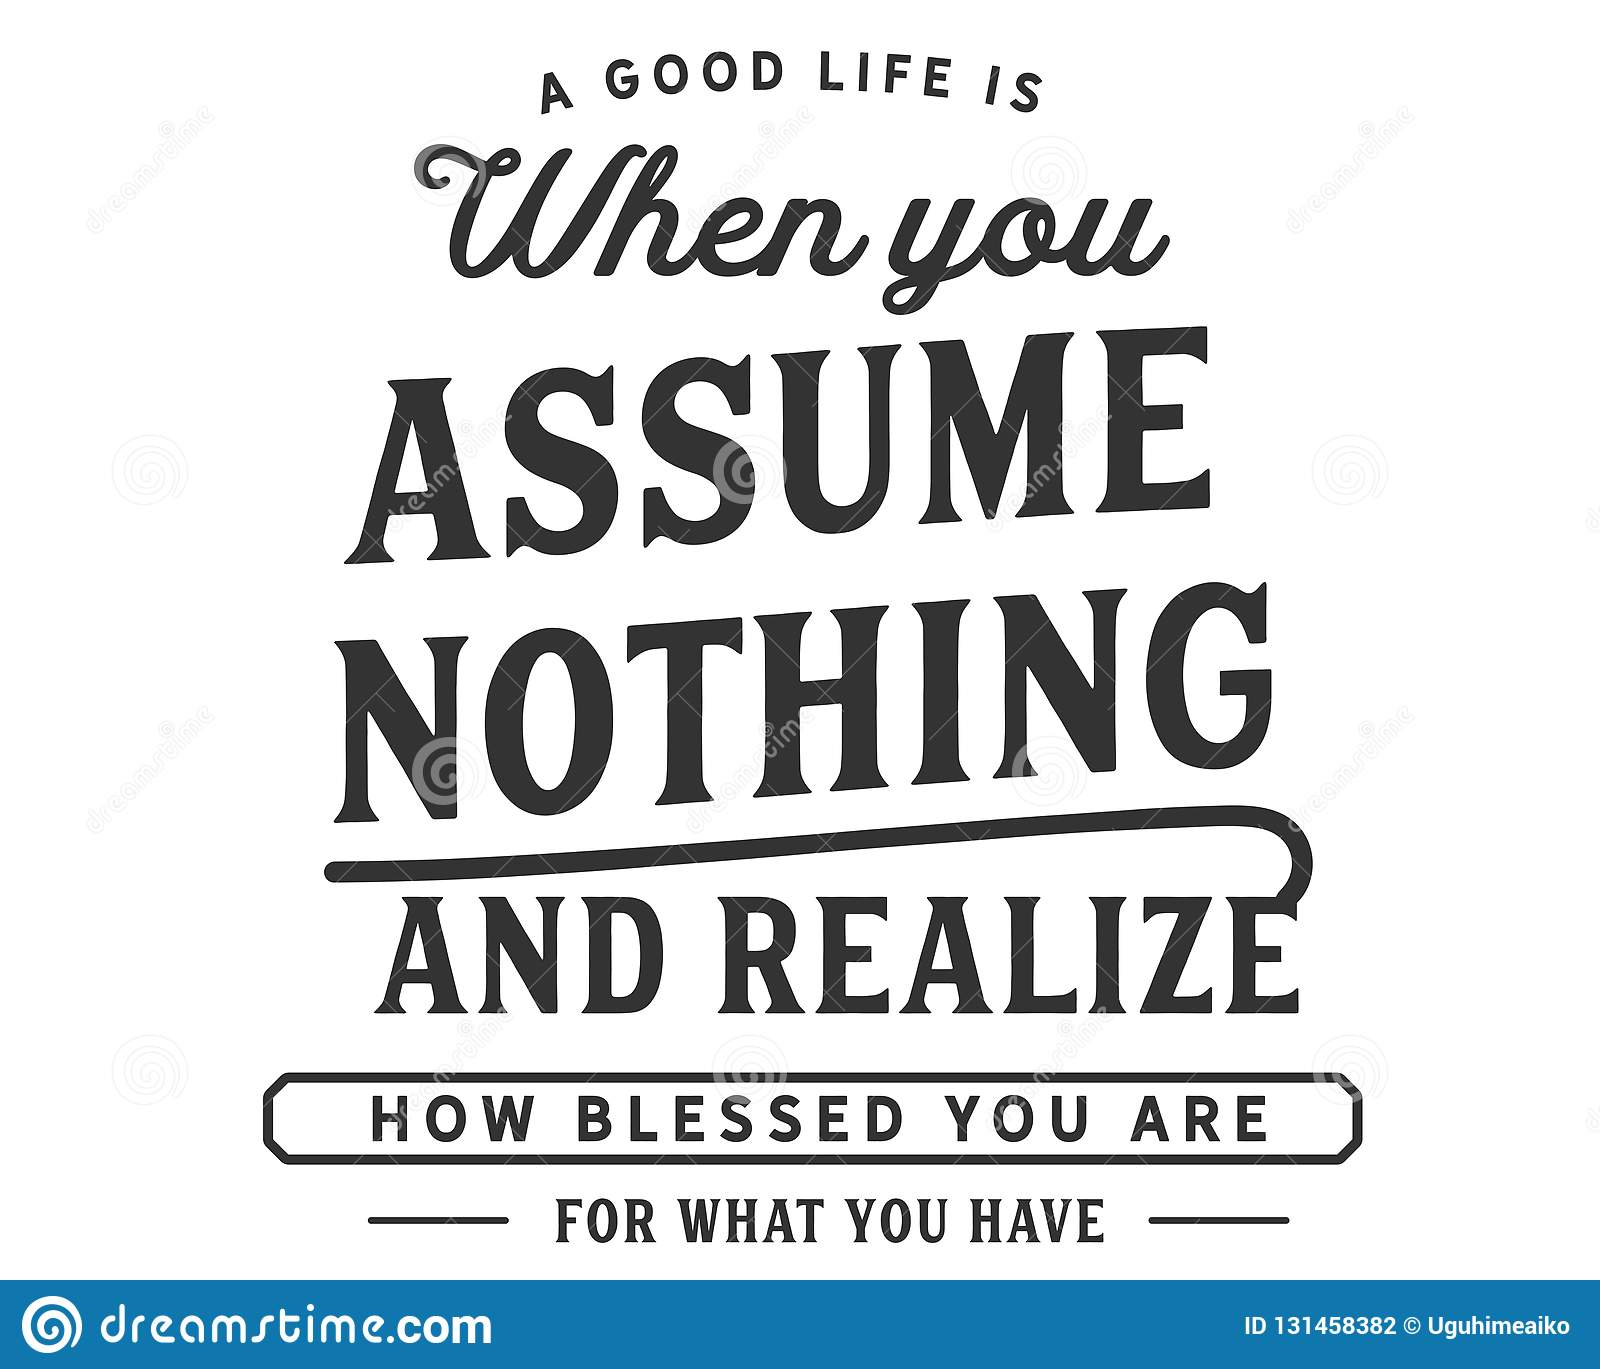 A Good Life Is When You Assume Nothing And Realize How Blessed You